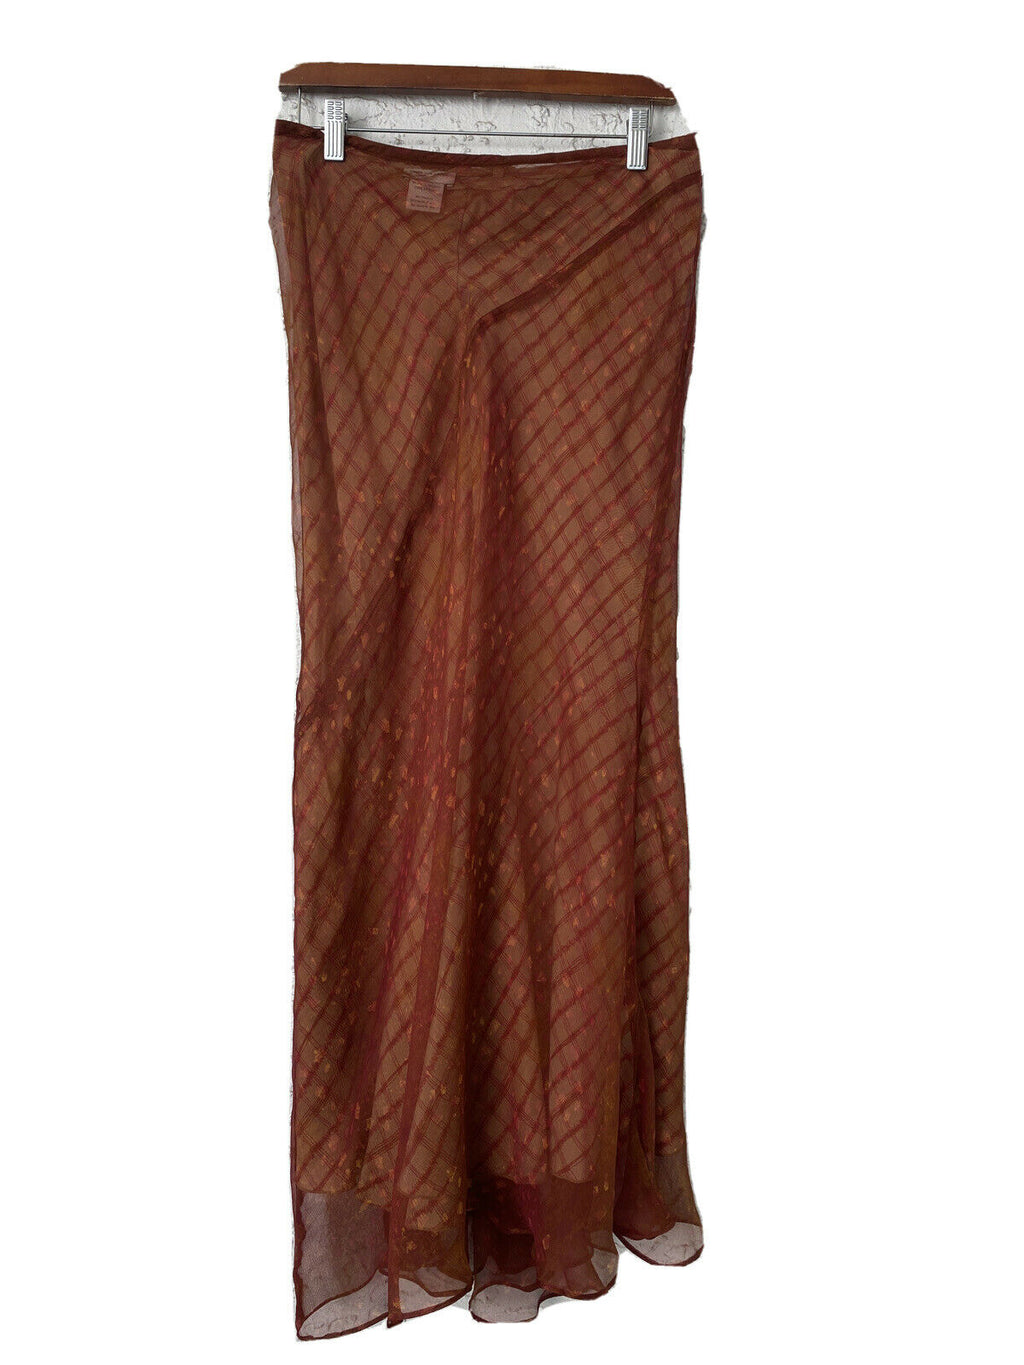 Dries Van Noten Womens Size 38/42 Red Beige Skirt Sheer Silk Printed Slip Maxi